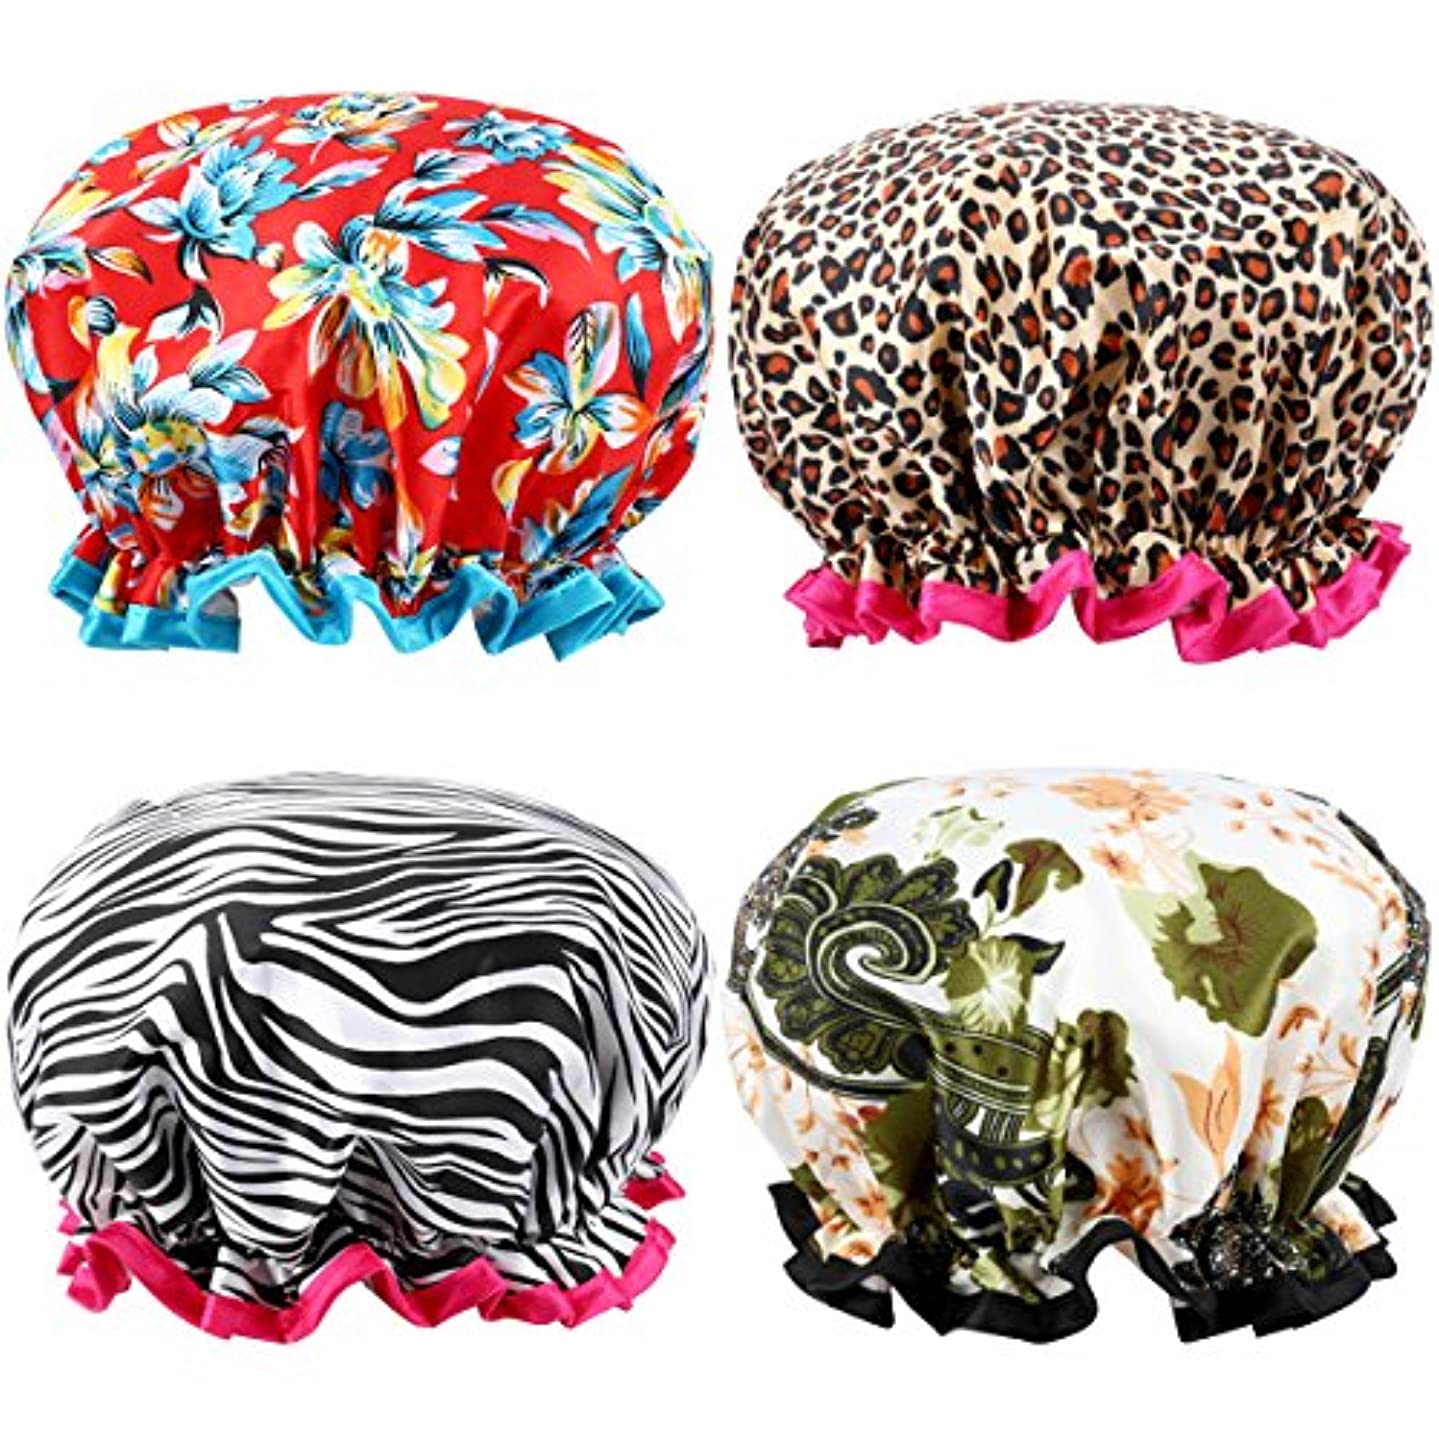 Shower Caps, ESARORA 4 PACK Bath Caps Perfect for Women all Hair Lengths and Thicknesses - Waterproof - Double Layer, Upgraded Version